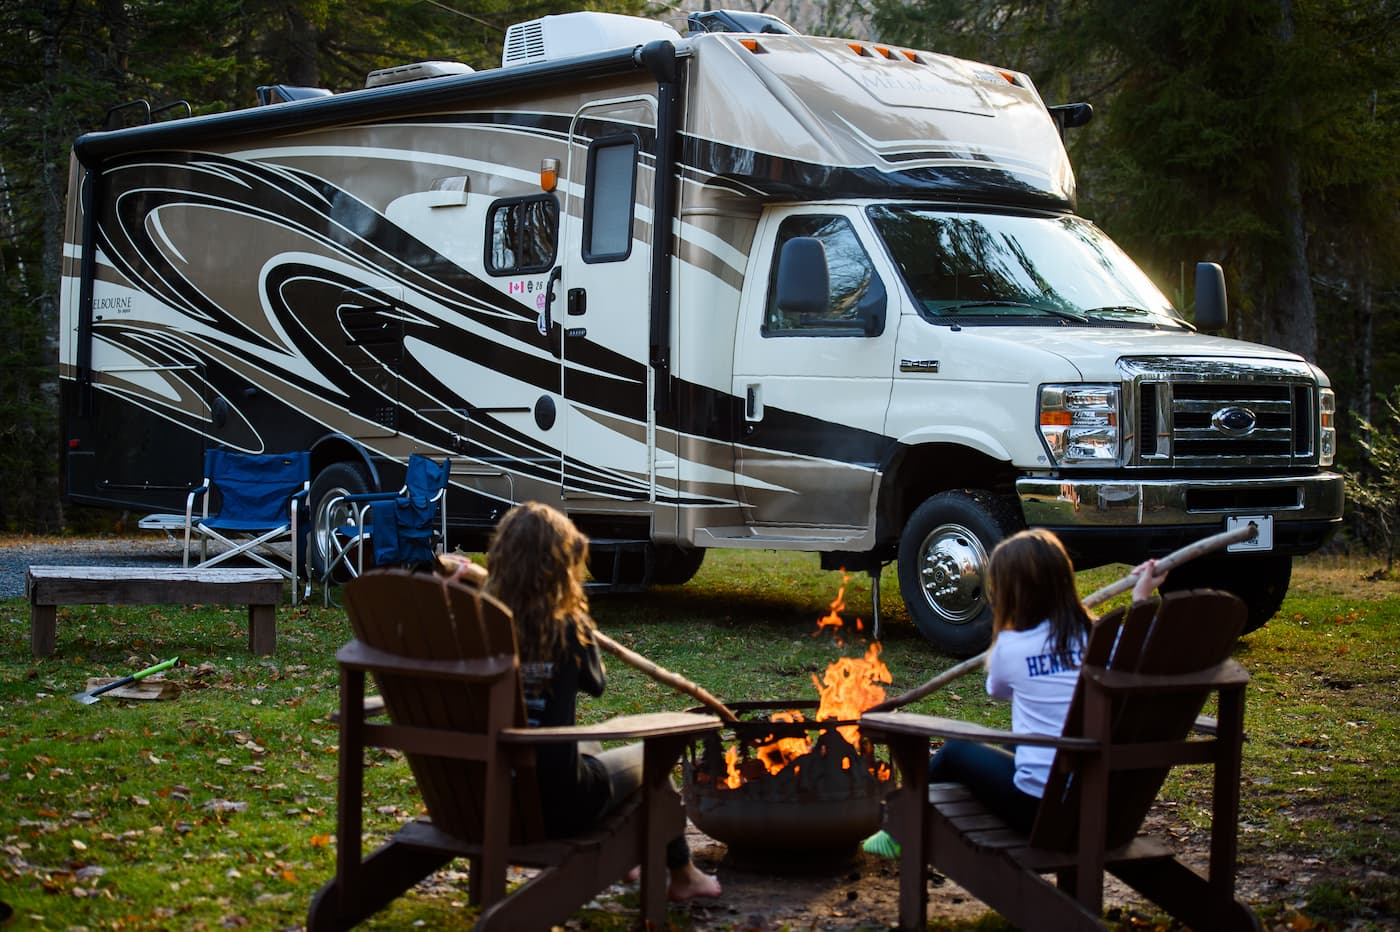 The Top 10 RV Must-Haves for a Successful RV Trip [With Pictures]